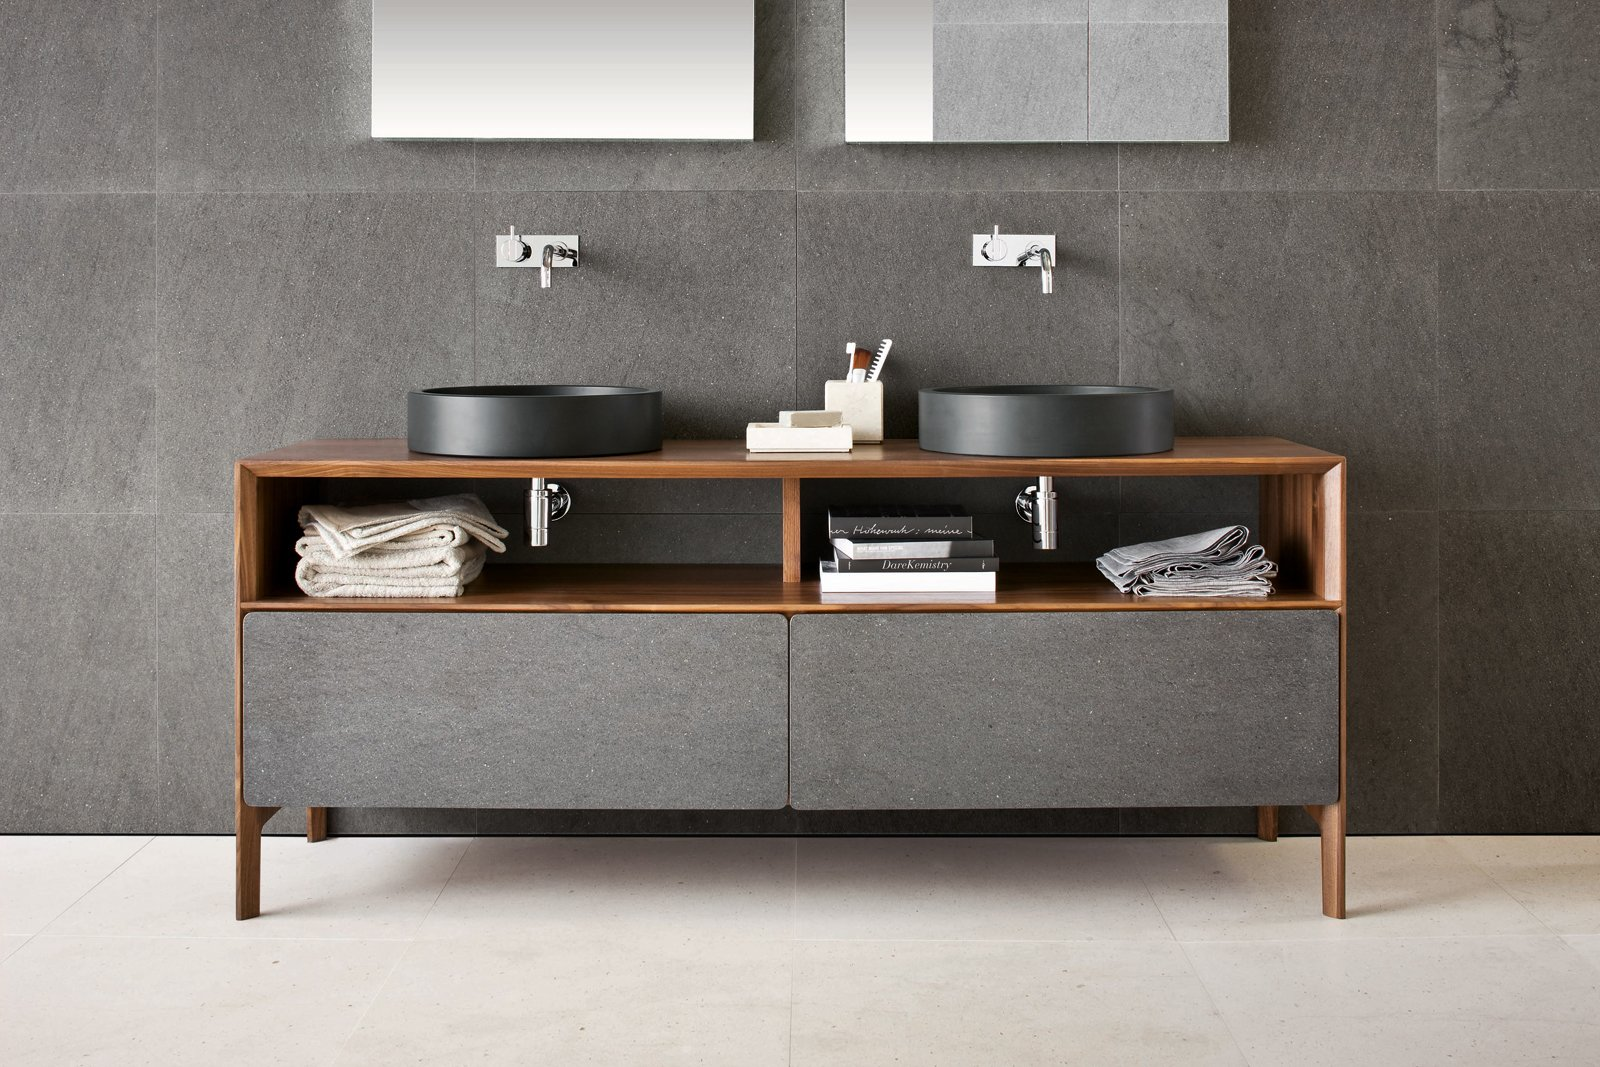 Inkstone wash-basins in Black Rock stone with Neos furniture, made from solid-walnut with Basaltina stone fronts (Neos furniture designed by Luca Martorano). Tagged: Bath Room, Wood Counter, and Vessel Sink.  Best Photos from Inky Inspiration